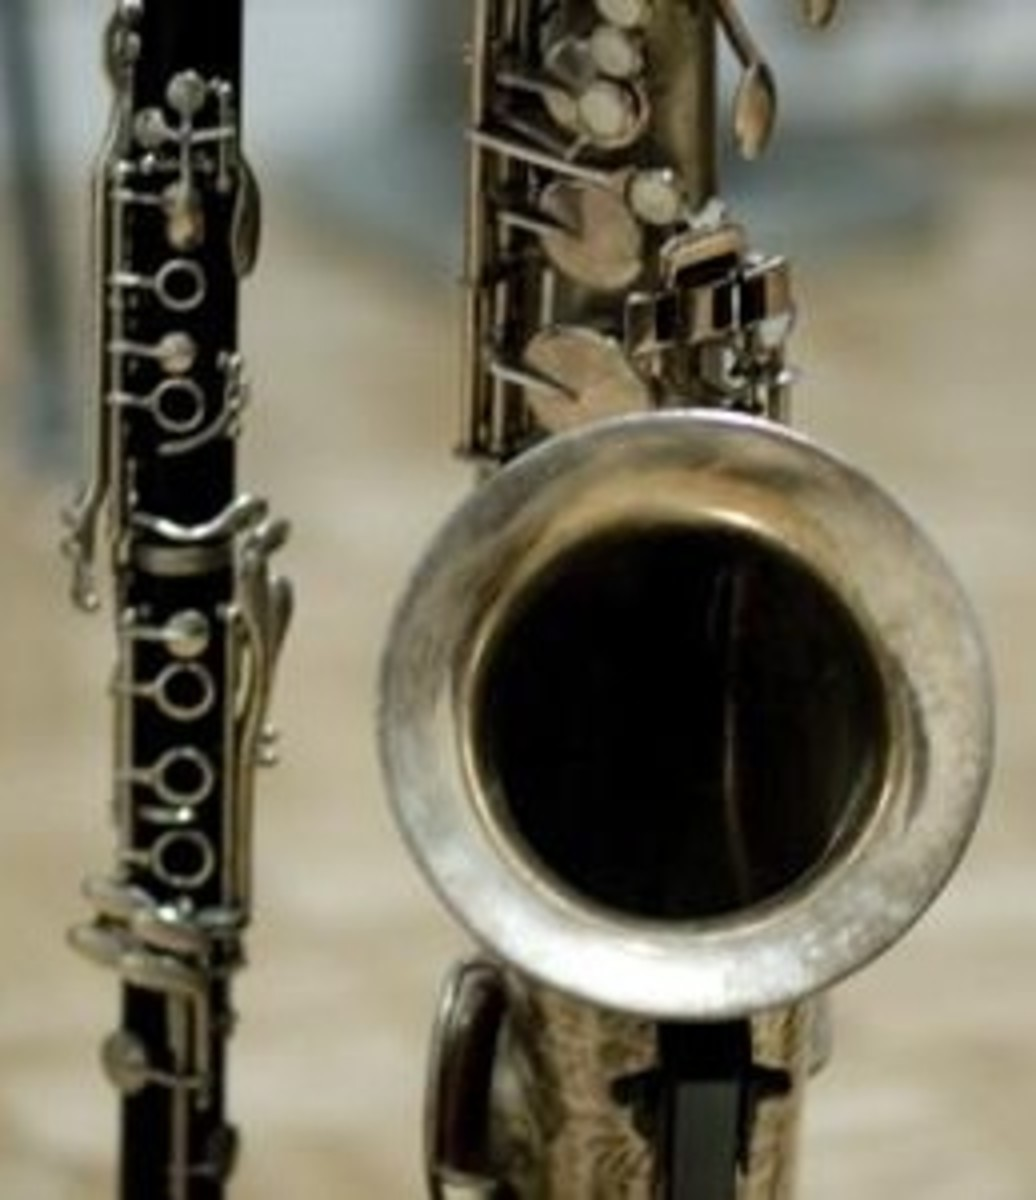 How to easily make the transition from Clarinet to Tenor Saxophone